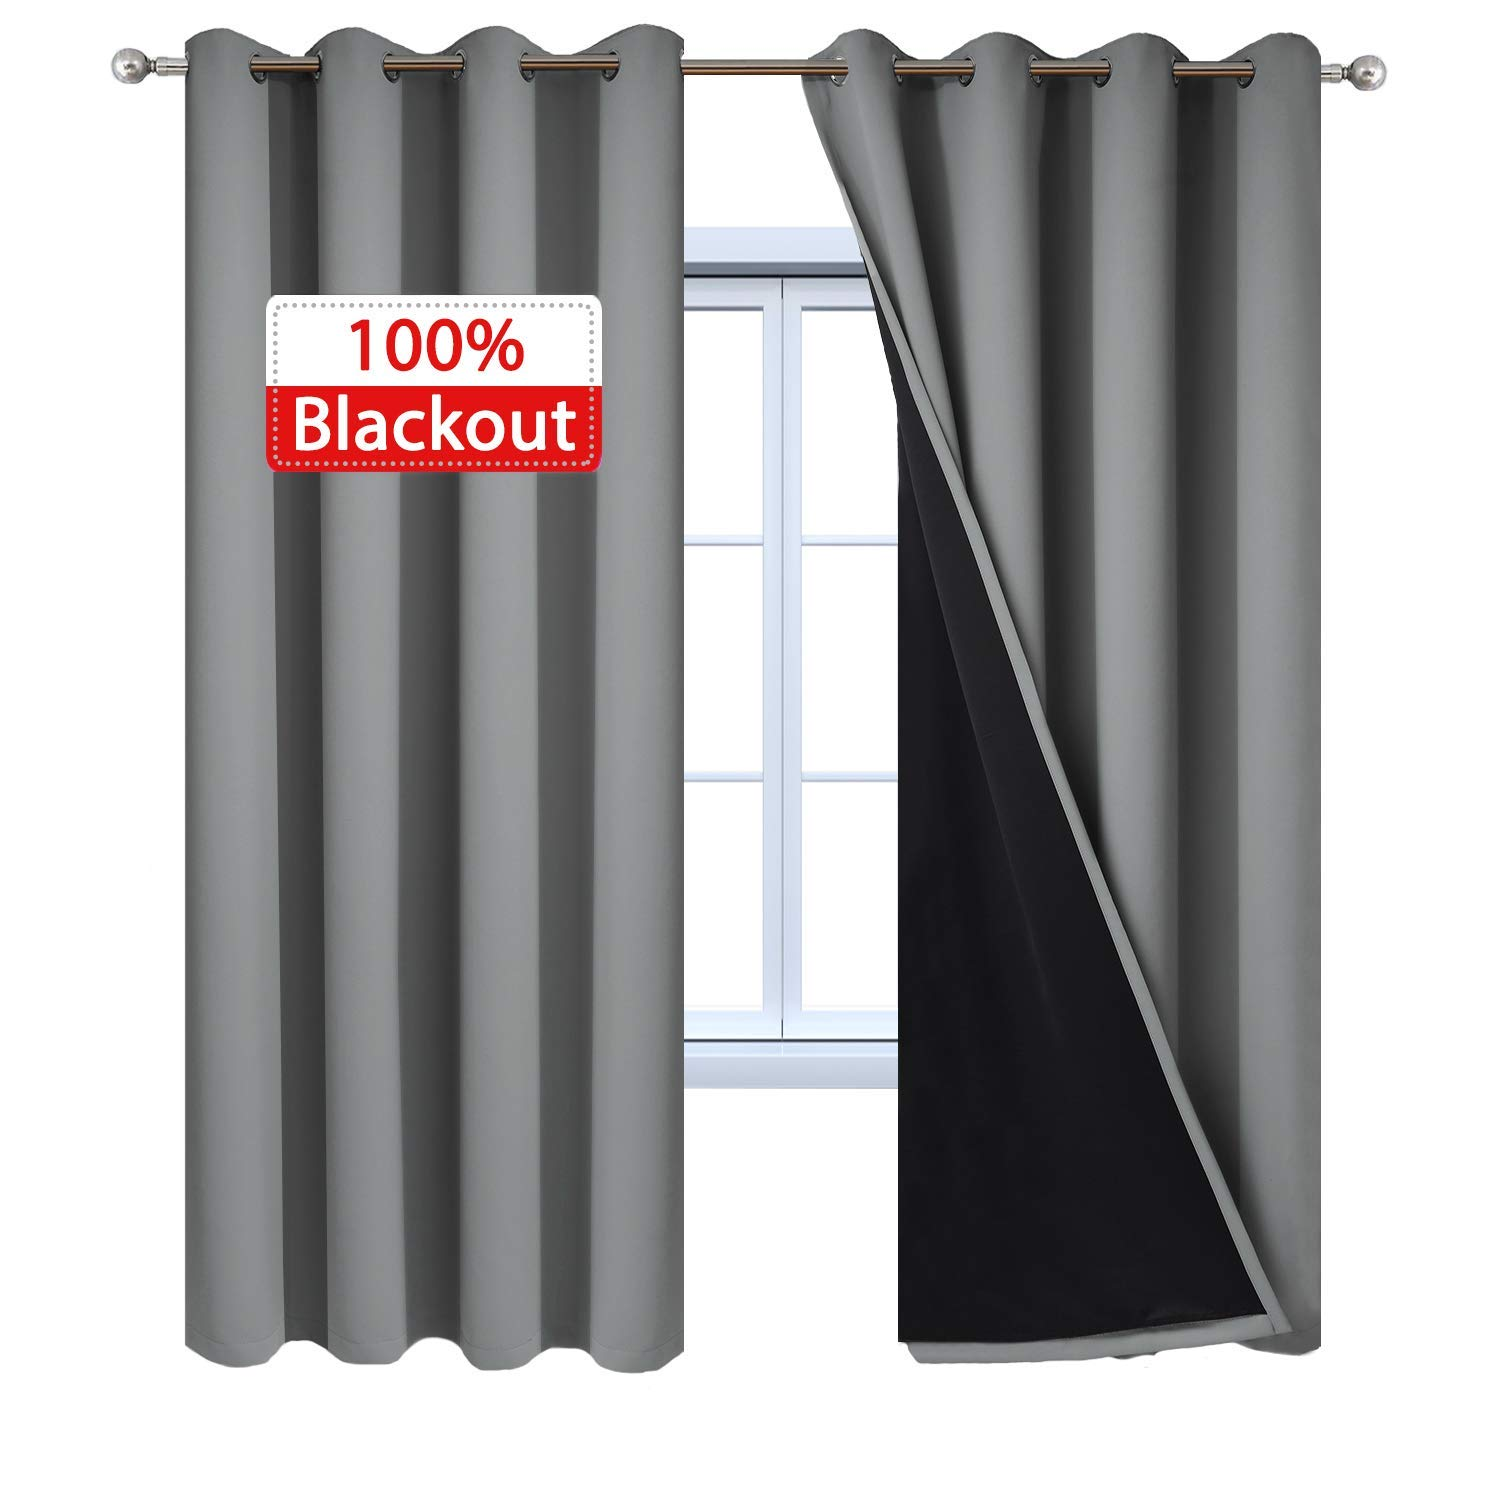 Yakamok Blackout Curtains Insulated Soundproof